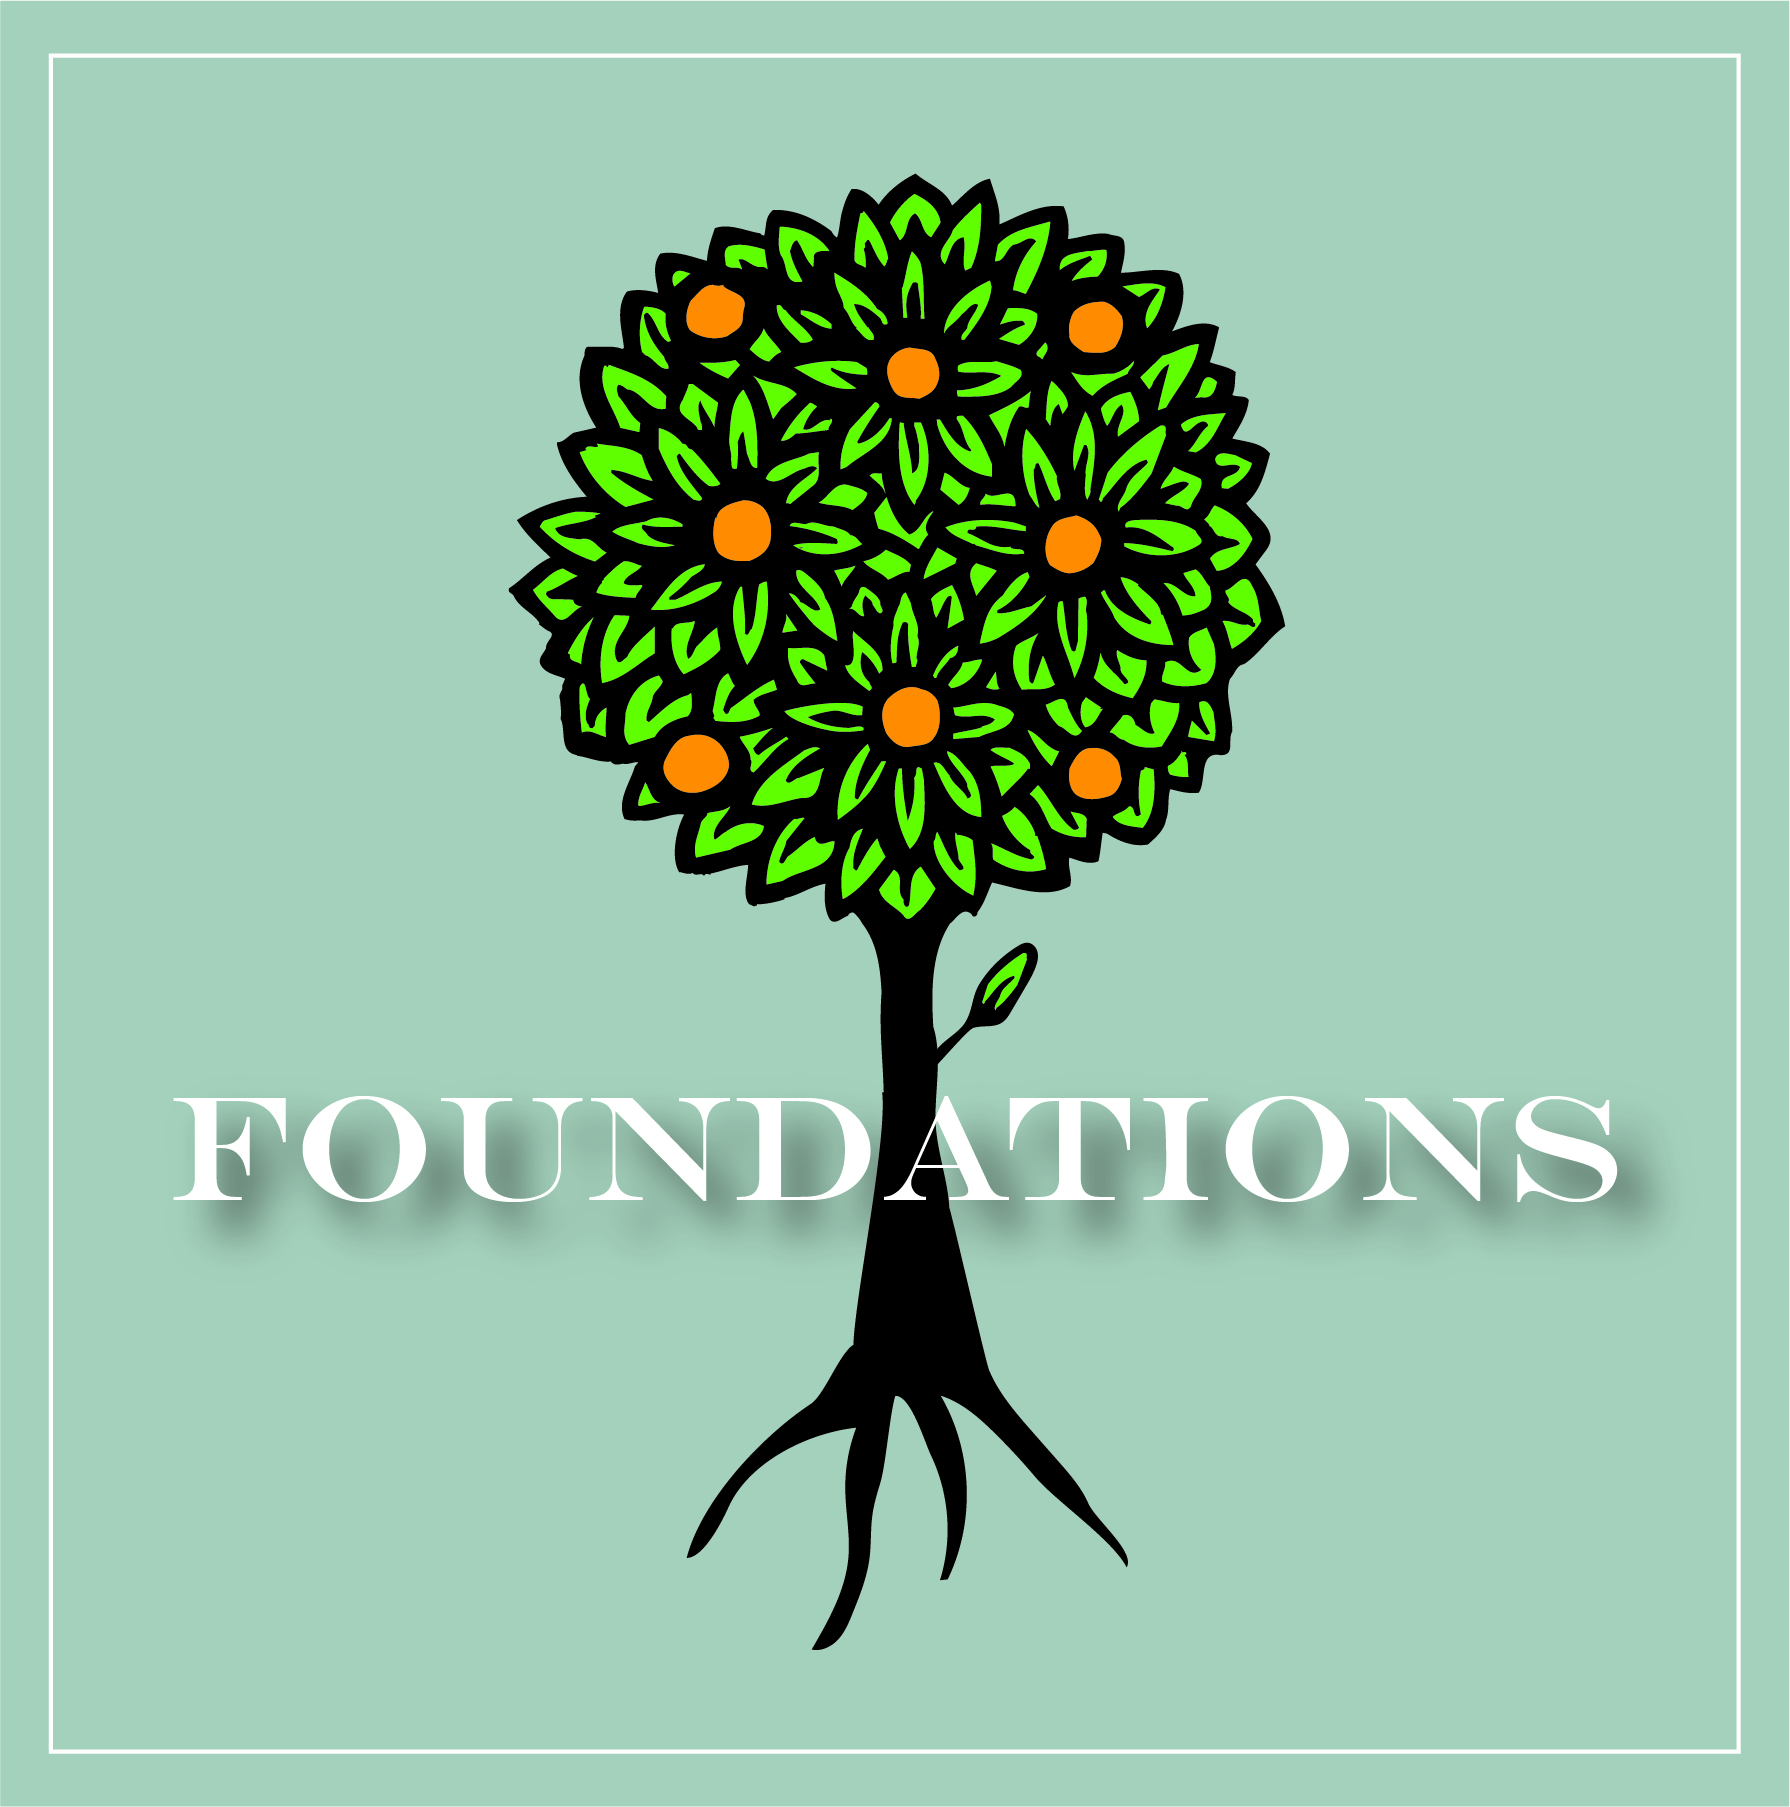 foundations sermon series graphic B.jpg